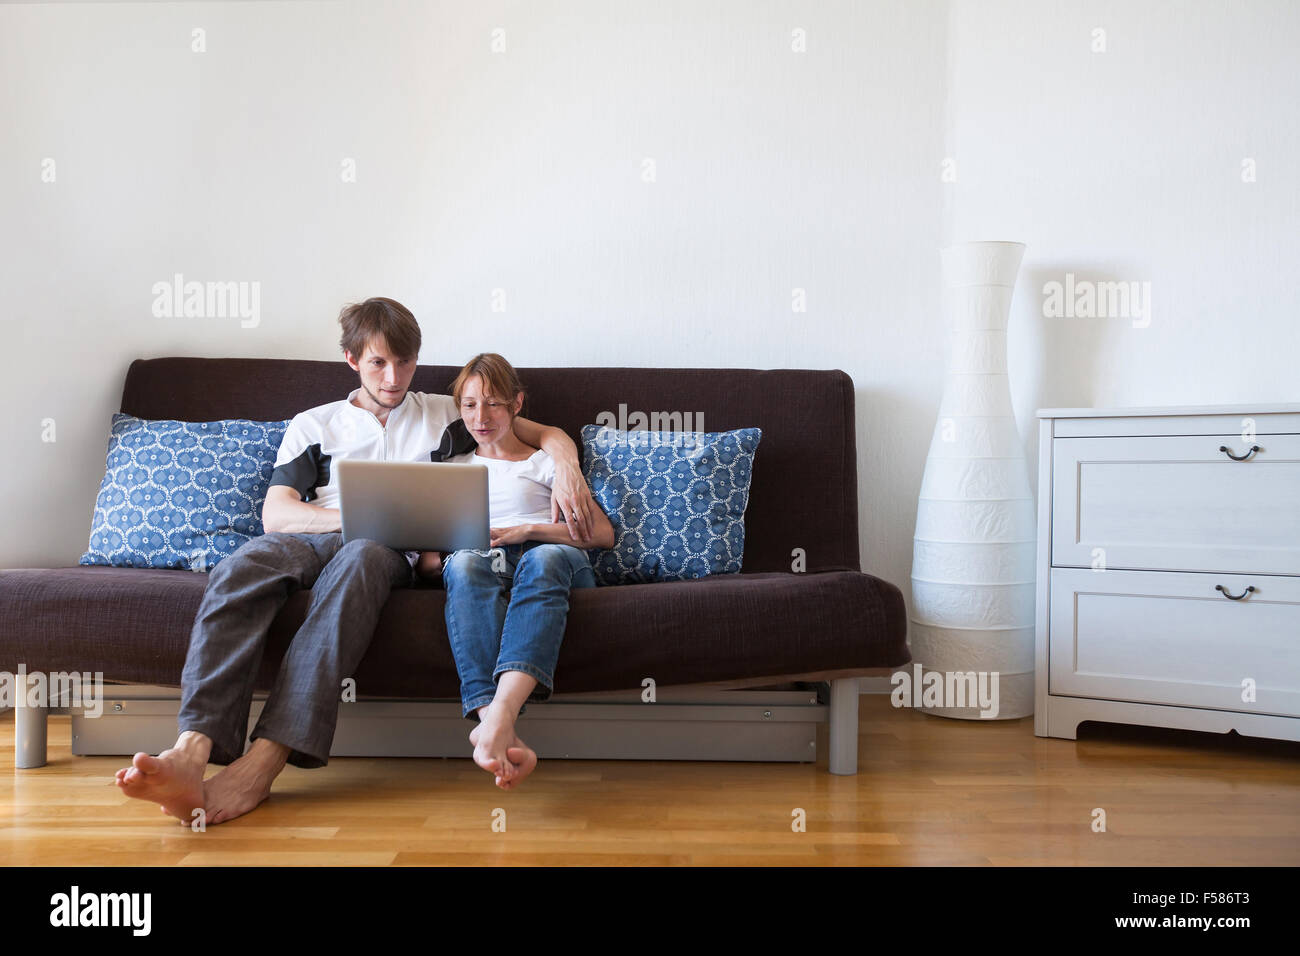 young family using laptop at home, couple on the couch with computer - Stock Image